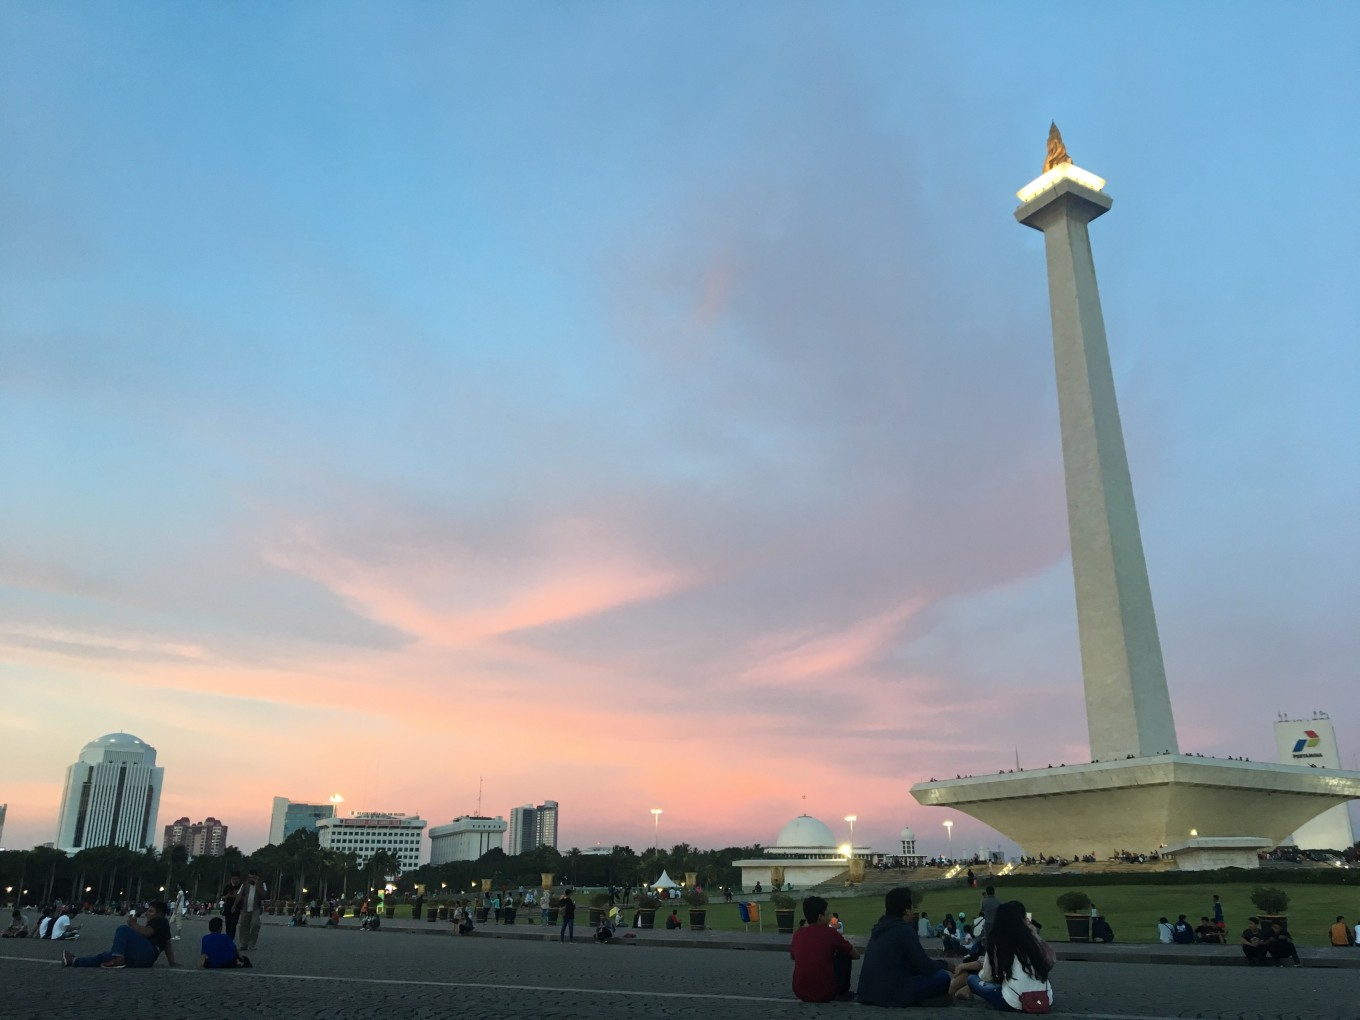 Insight: Jakarta's anniversary: Celebrating the people